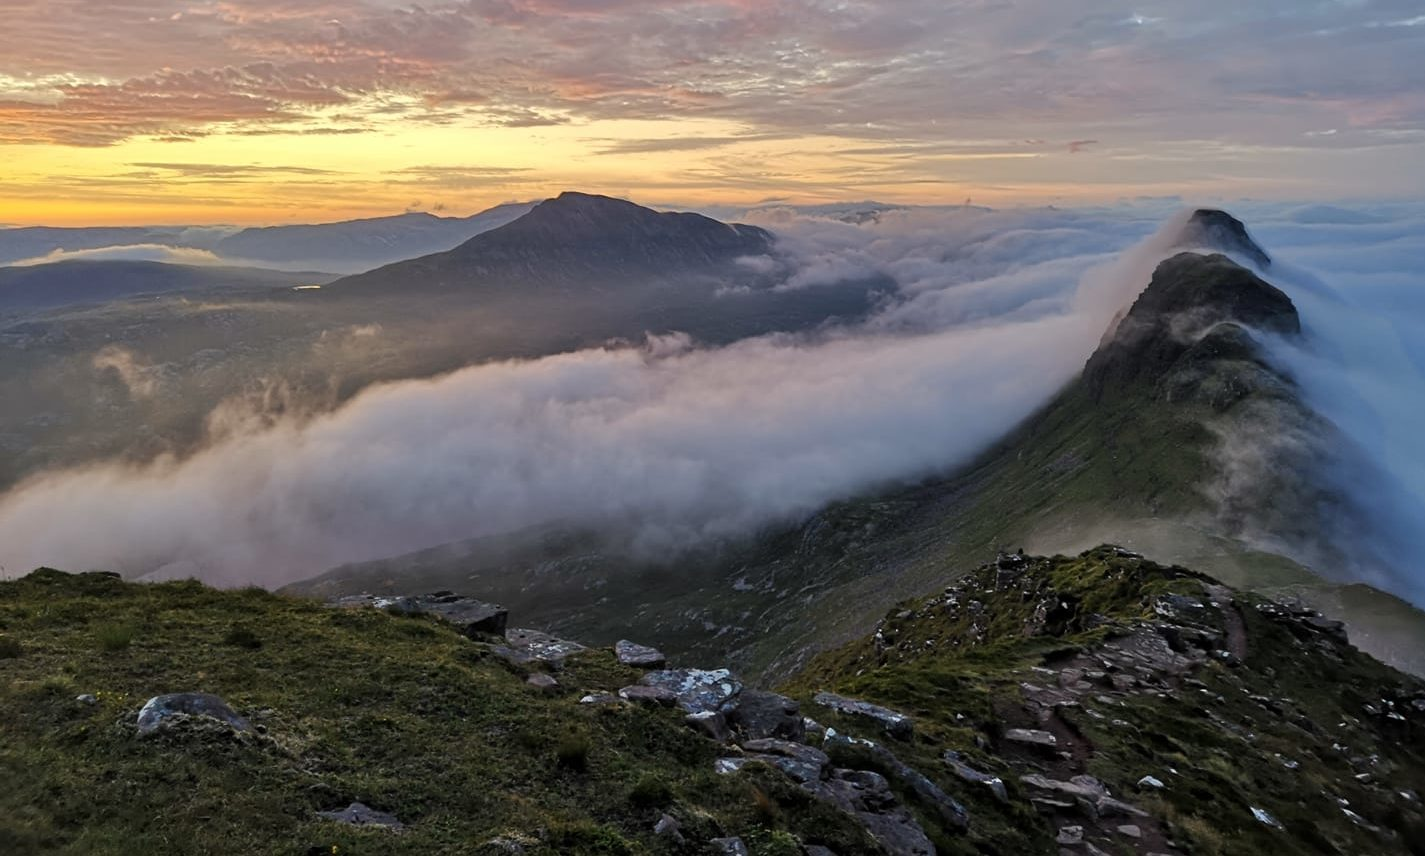 The sun rises on top of the Suilven Mountain.